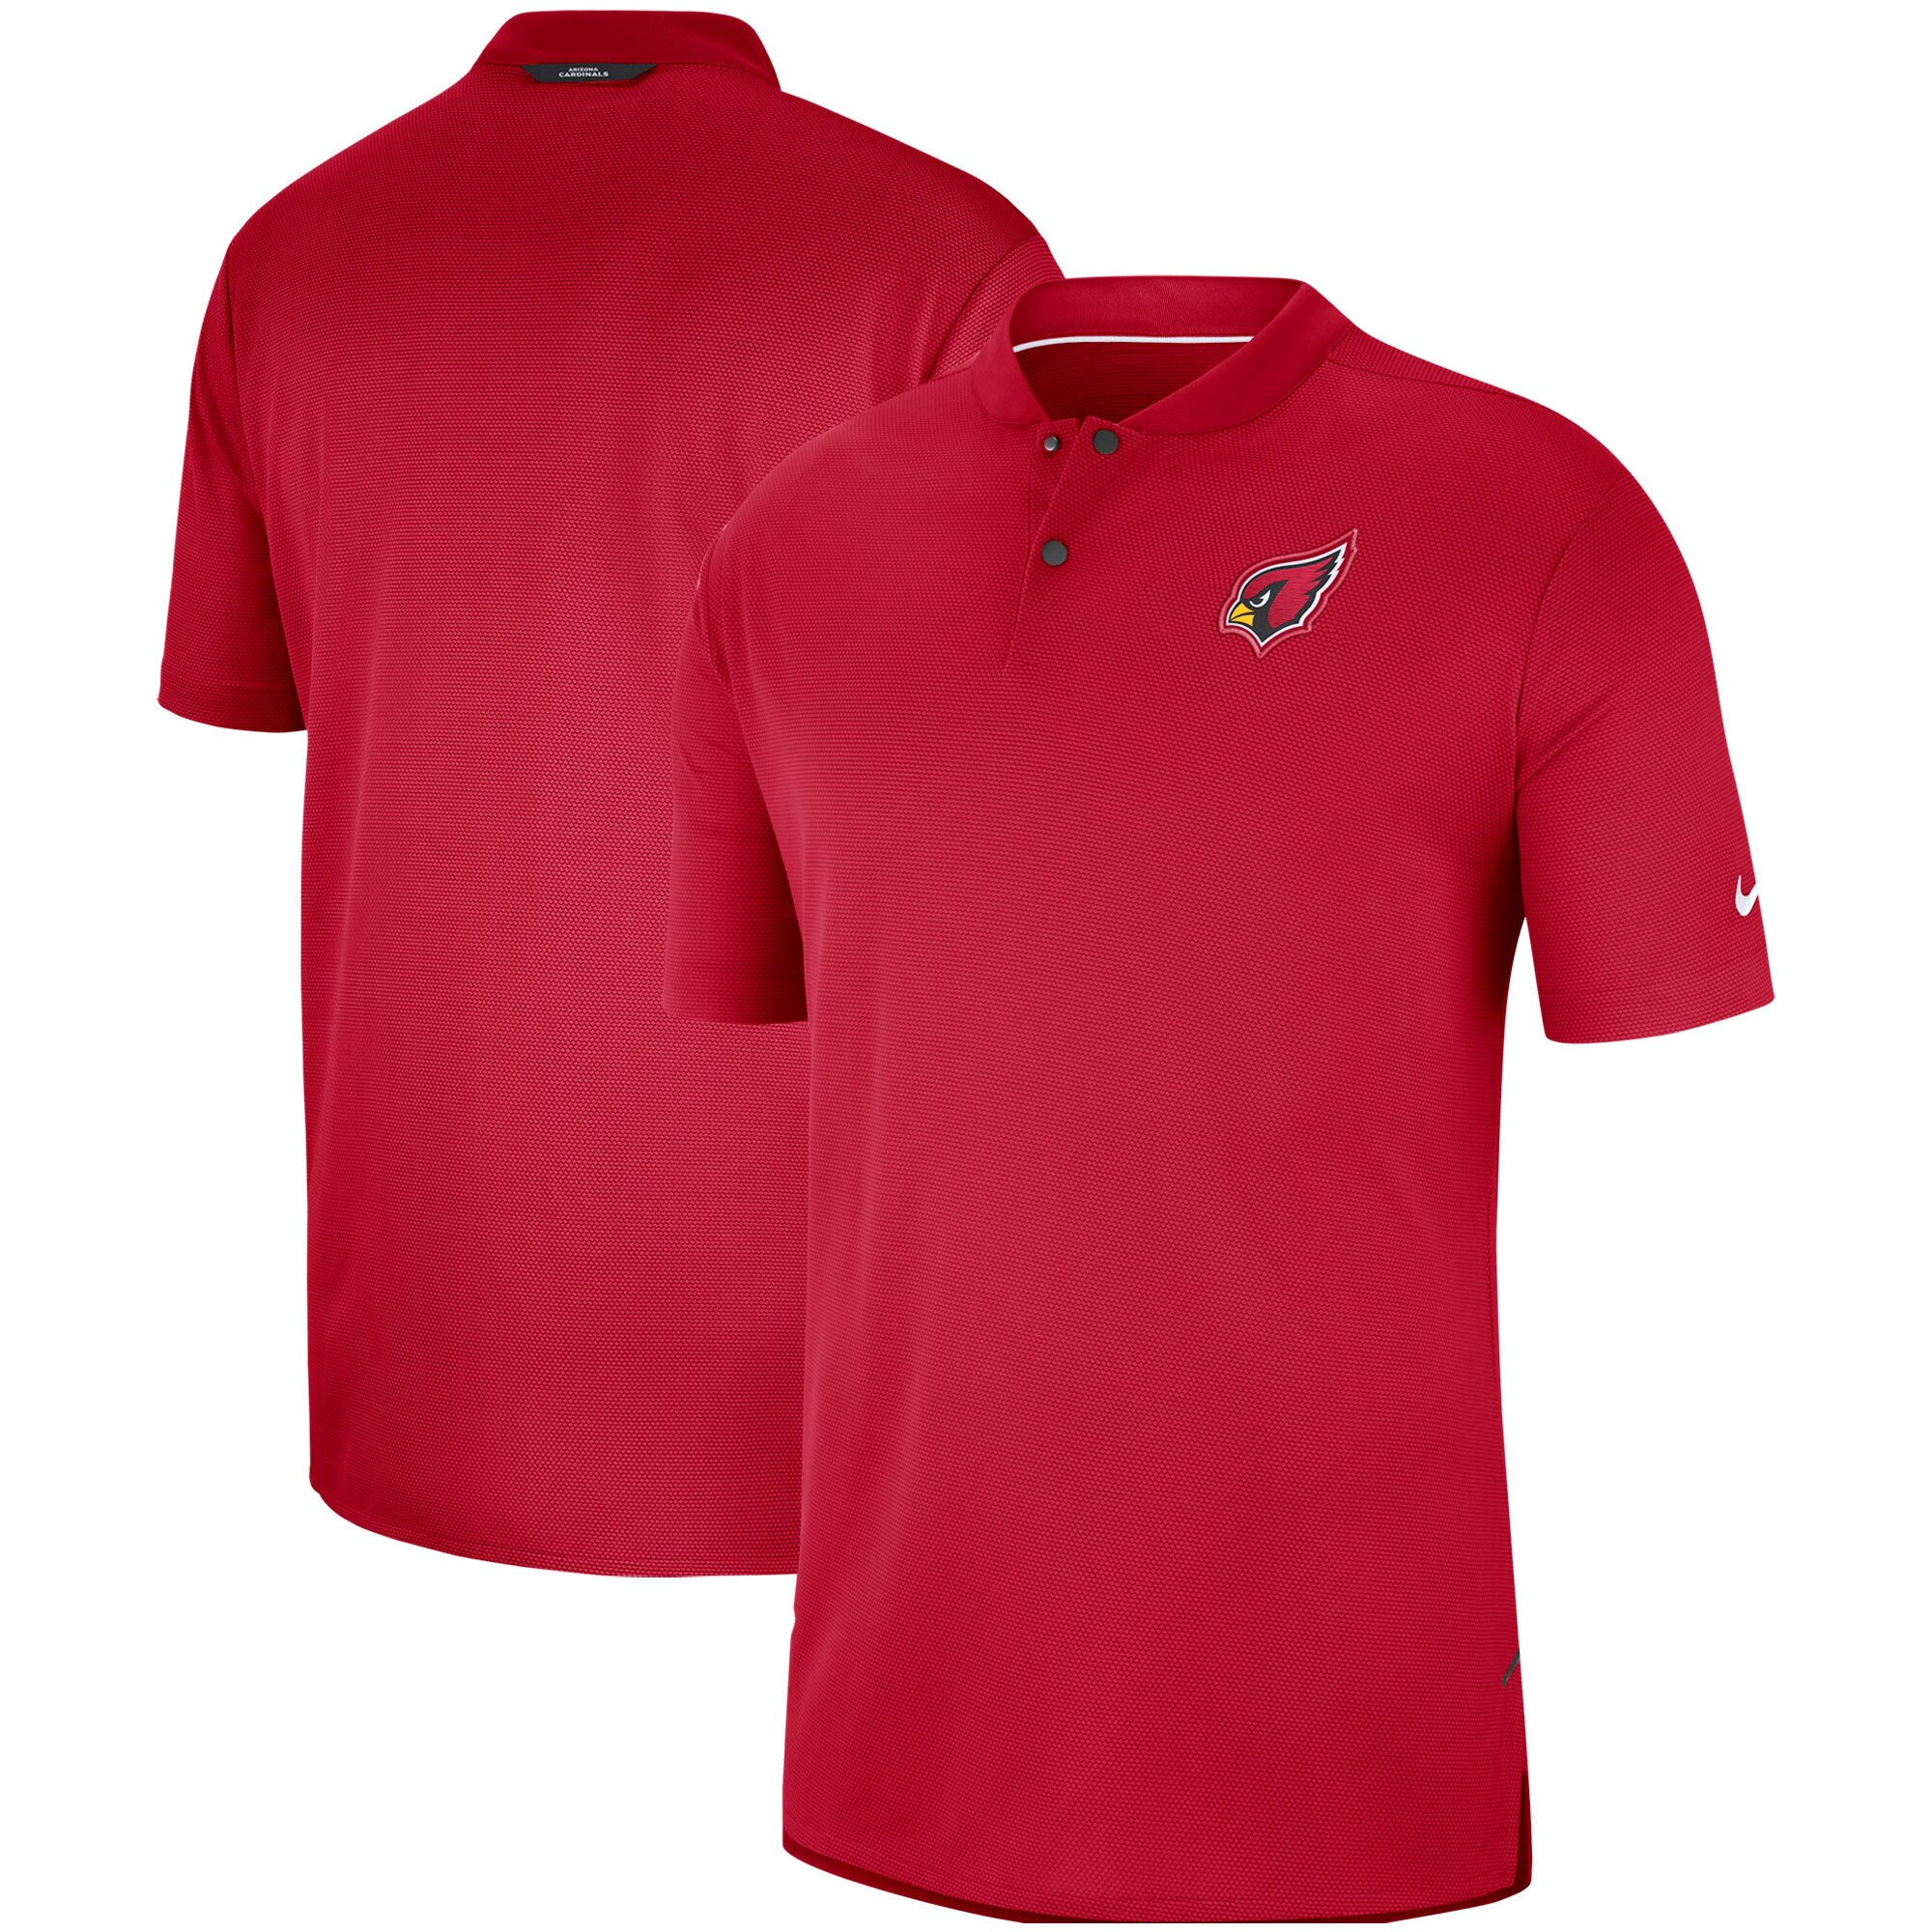 Arizona Cardinals Nike Sideline Elite Coaches Performance Polo - Cardinal